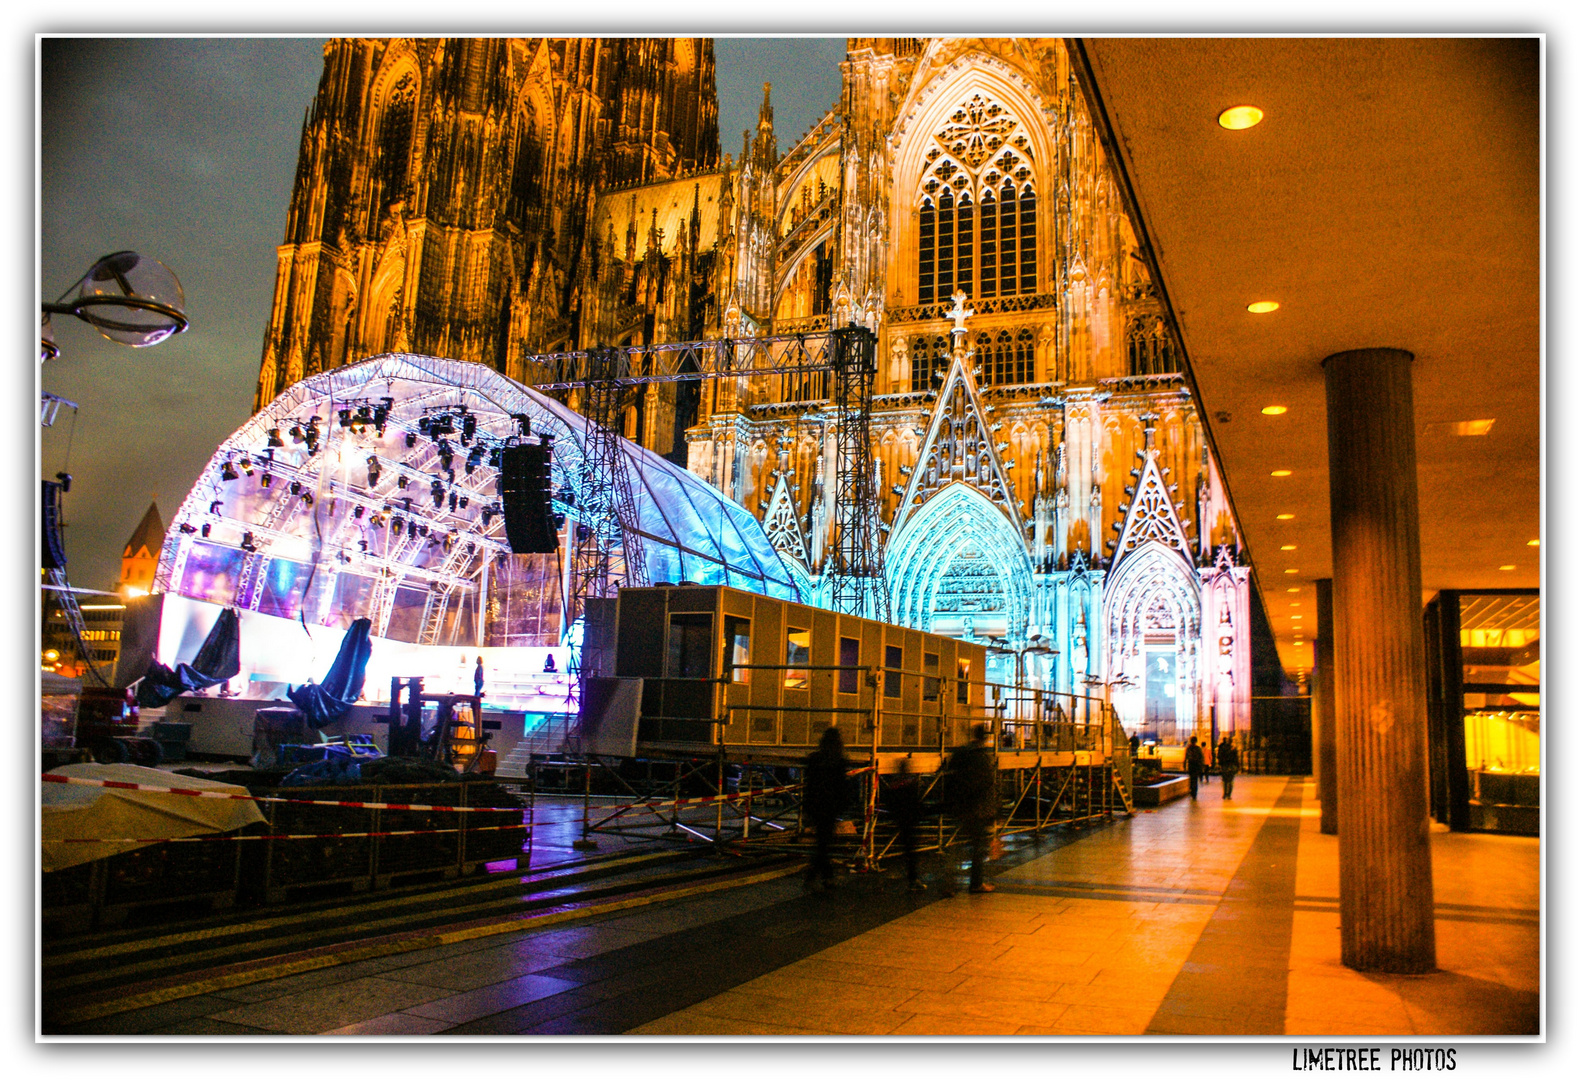 The Cologne Cathedral at Night